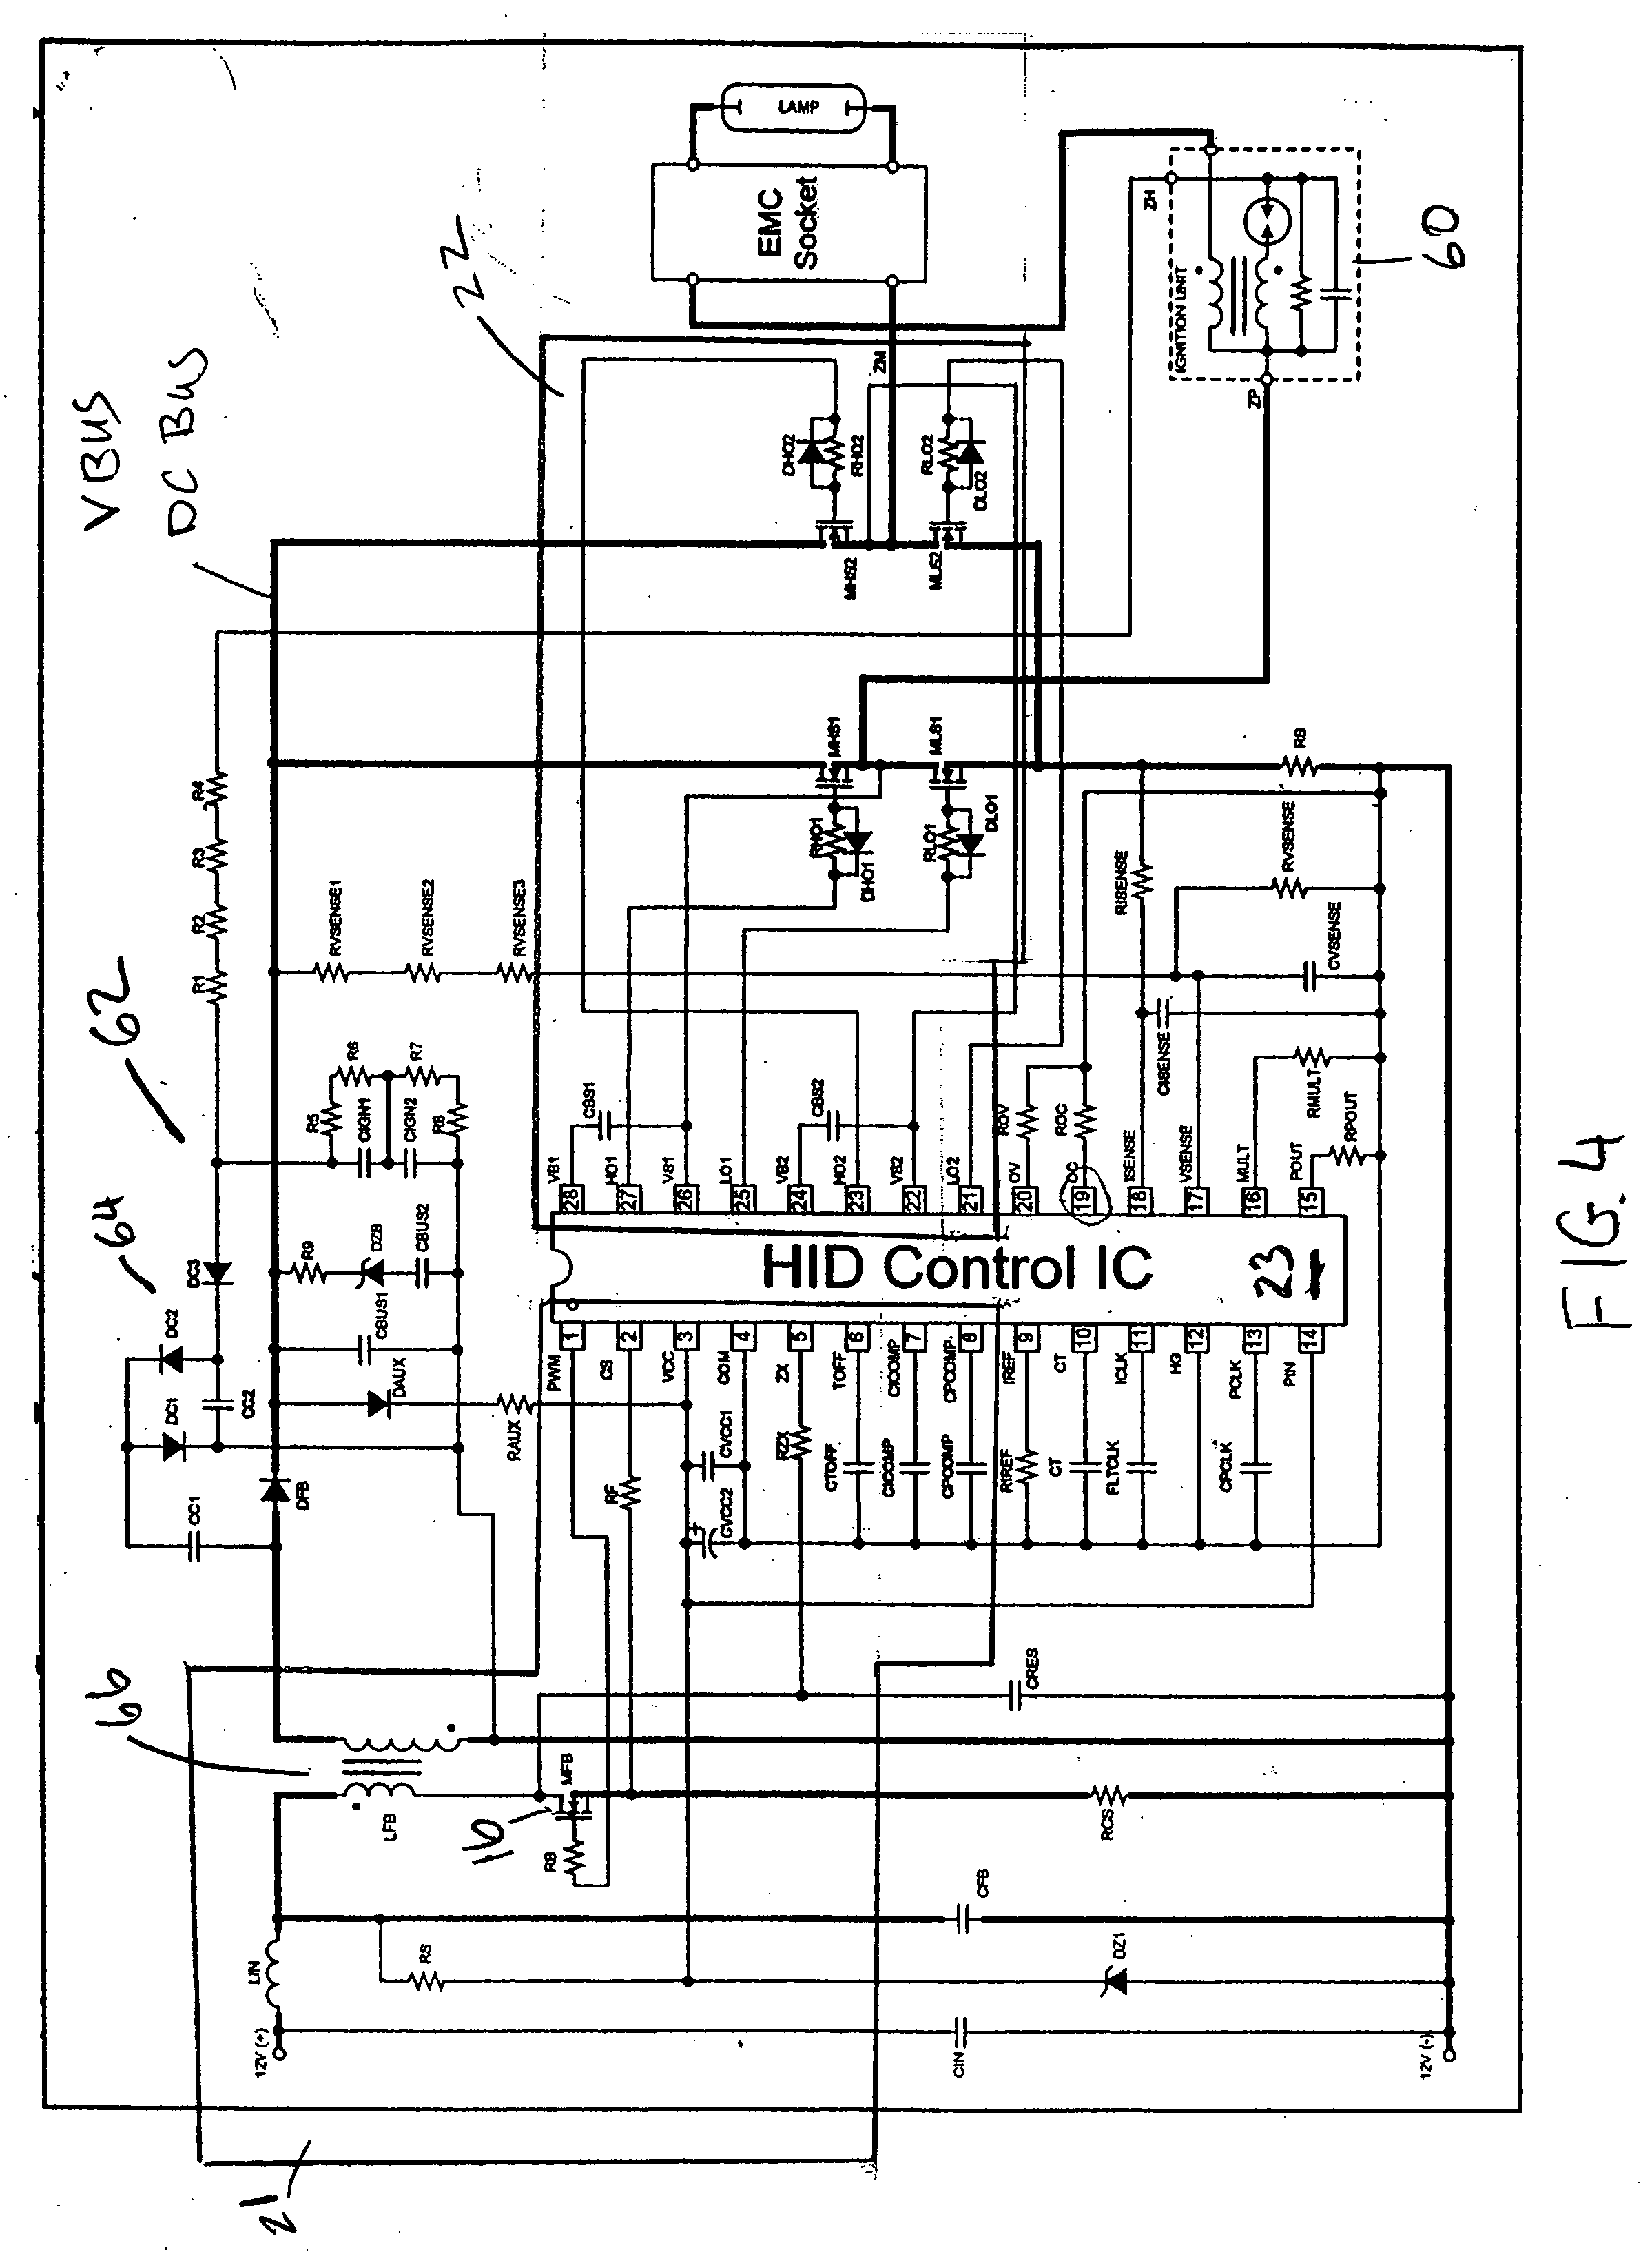 Hid Ballast Circuit Diagram Simple Wiring Options Using Incandescent And Capacitor Ledandlightcircuit Patent Us20060197470 Automotive High Intensity Discharge Lamp 4 Light